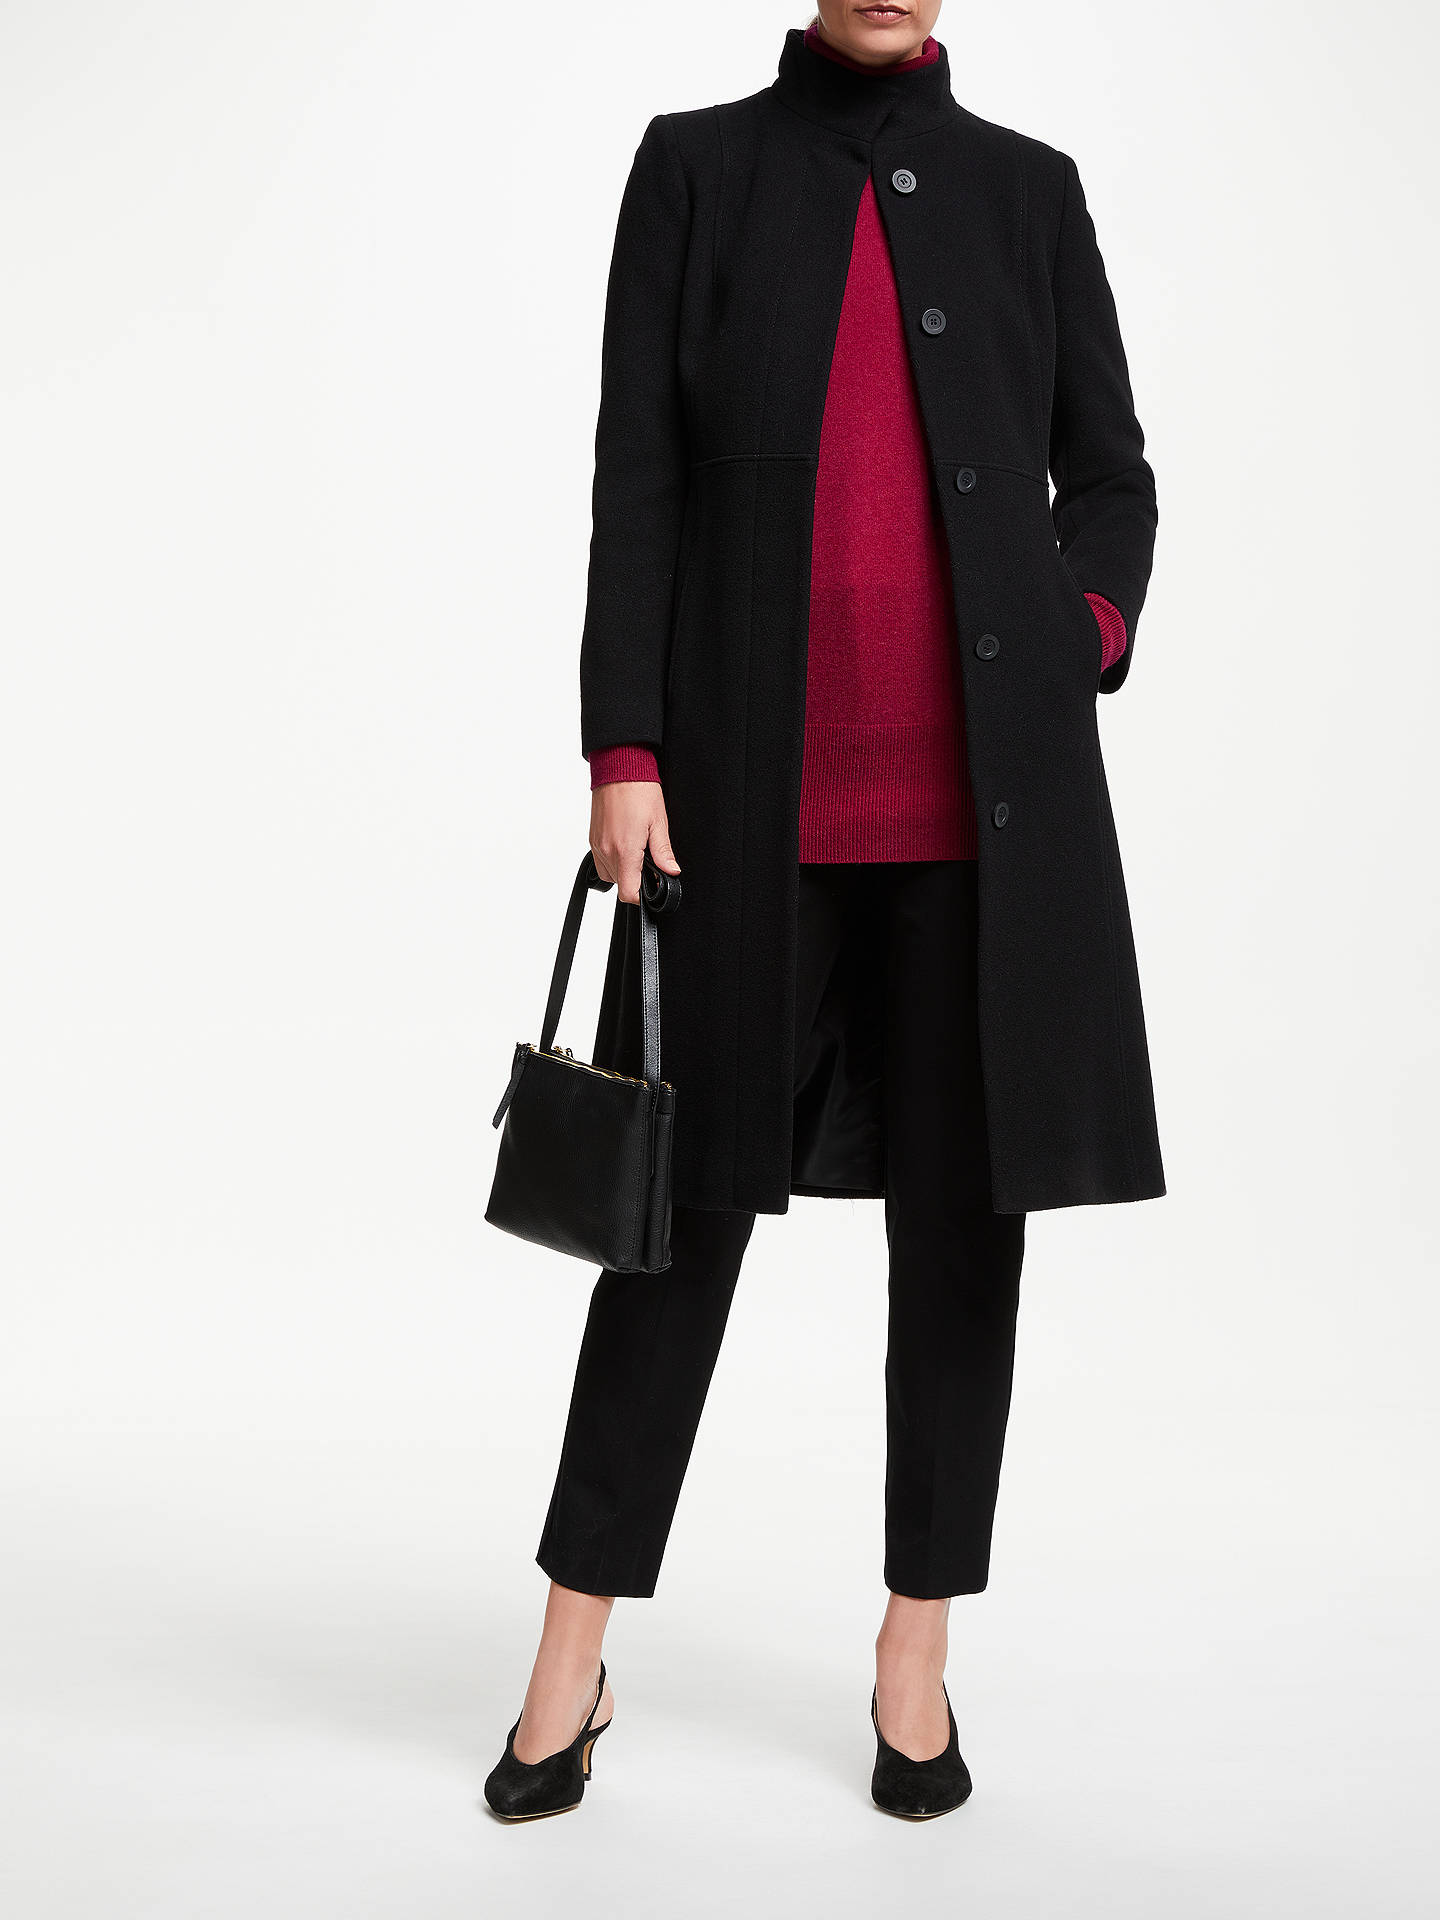 Buy John Lewis & Partners Fit and Flare Funnel Long Coat, Black, 8 Online at johnlewis.com